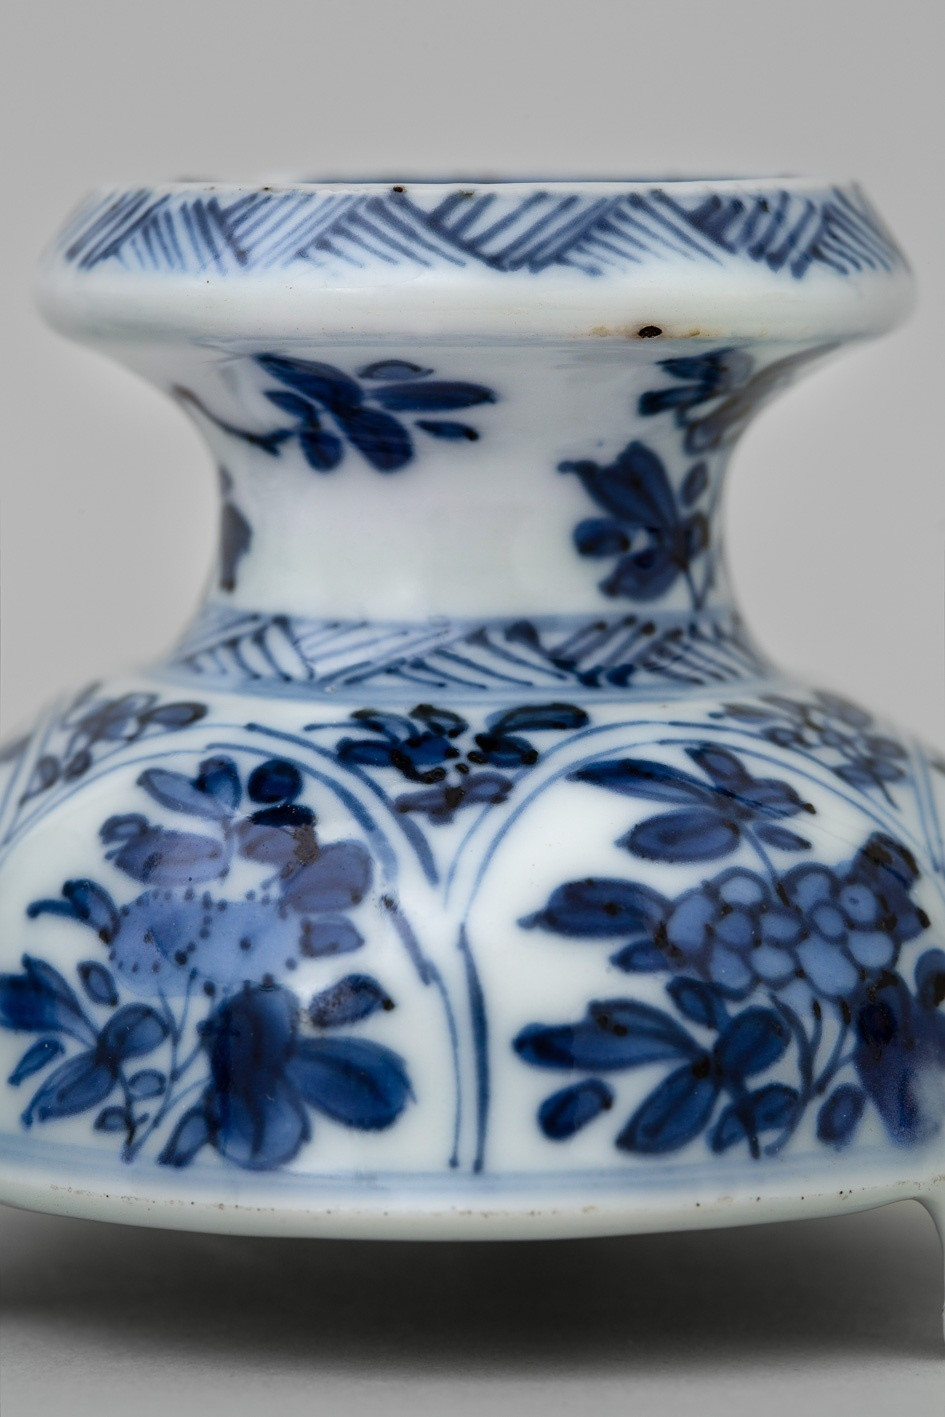 Fine China Vase Made In Japan Of A Pair Of Chinese Salt Cellars Kangxi 1662 1722 Probably before with A Pair Of Chinese Salt Cellars